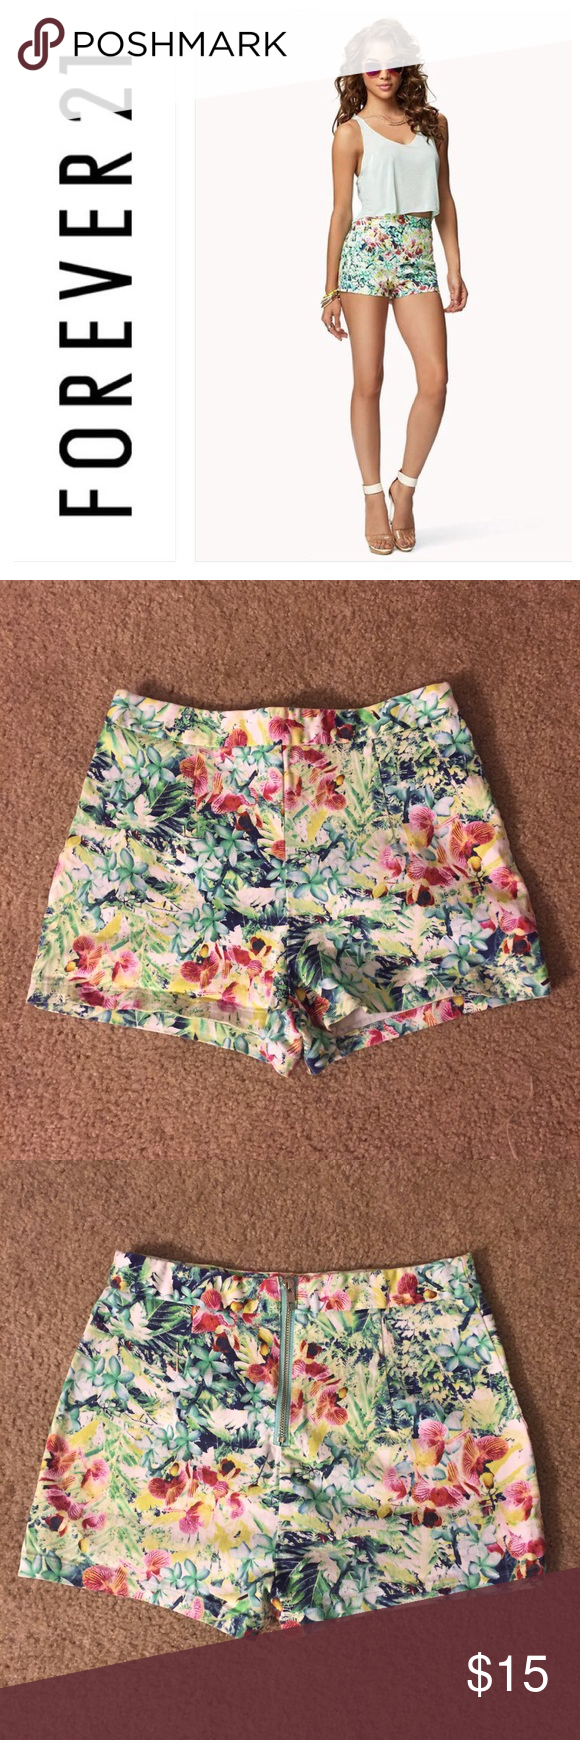 New ArrivalForever21 high waist tropical short Super cute high-waisted shorts in tropical floral pattern. 98% cotton, 2% spandex. Zips up the back. 1 1/2 inch inseam. Size medium. Excellent condition! Make me an offer! Forever 21 Shorts